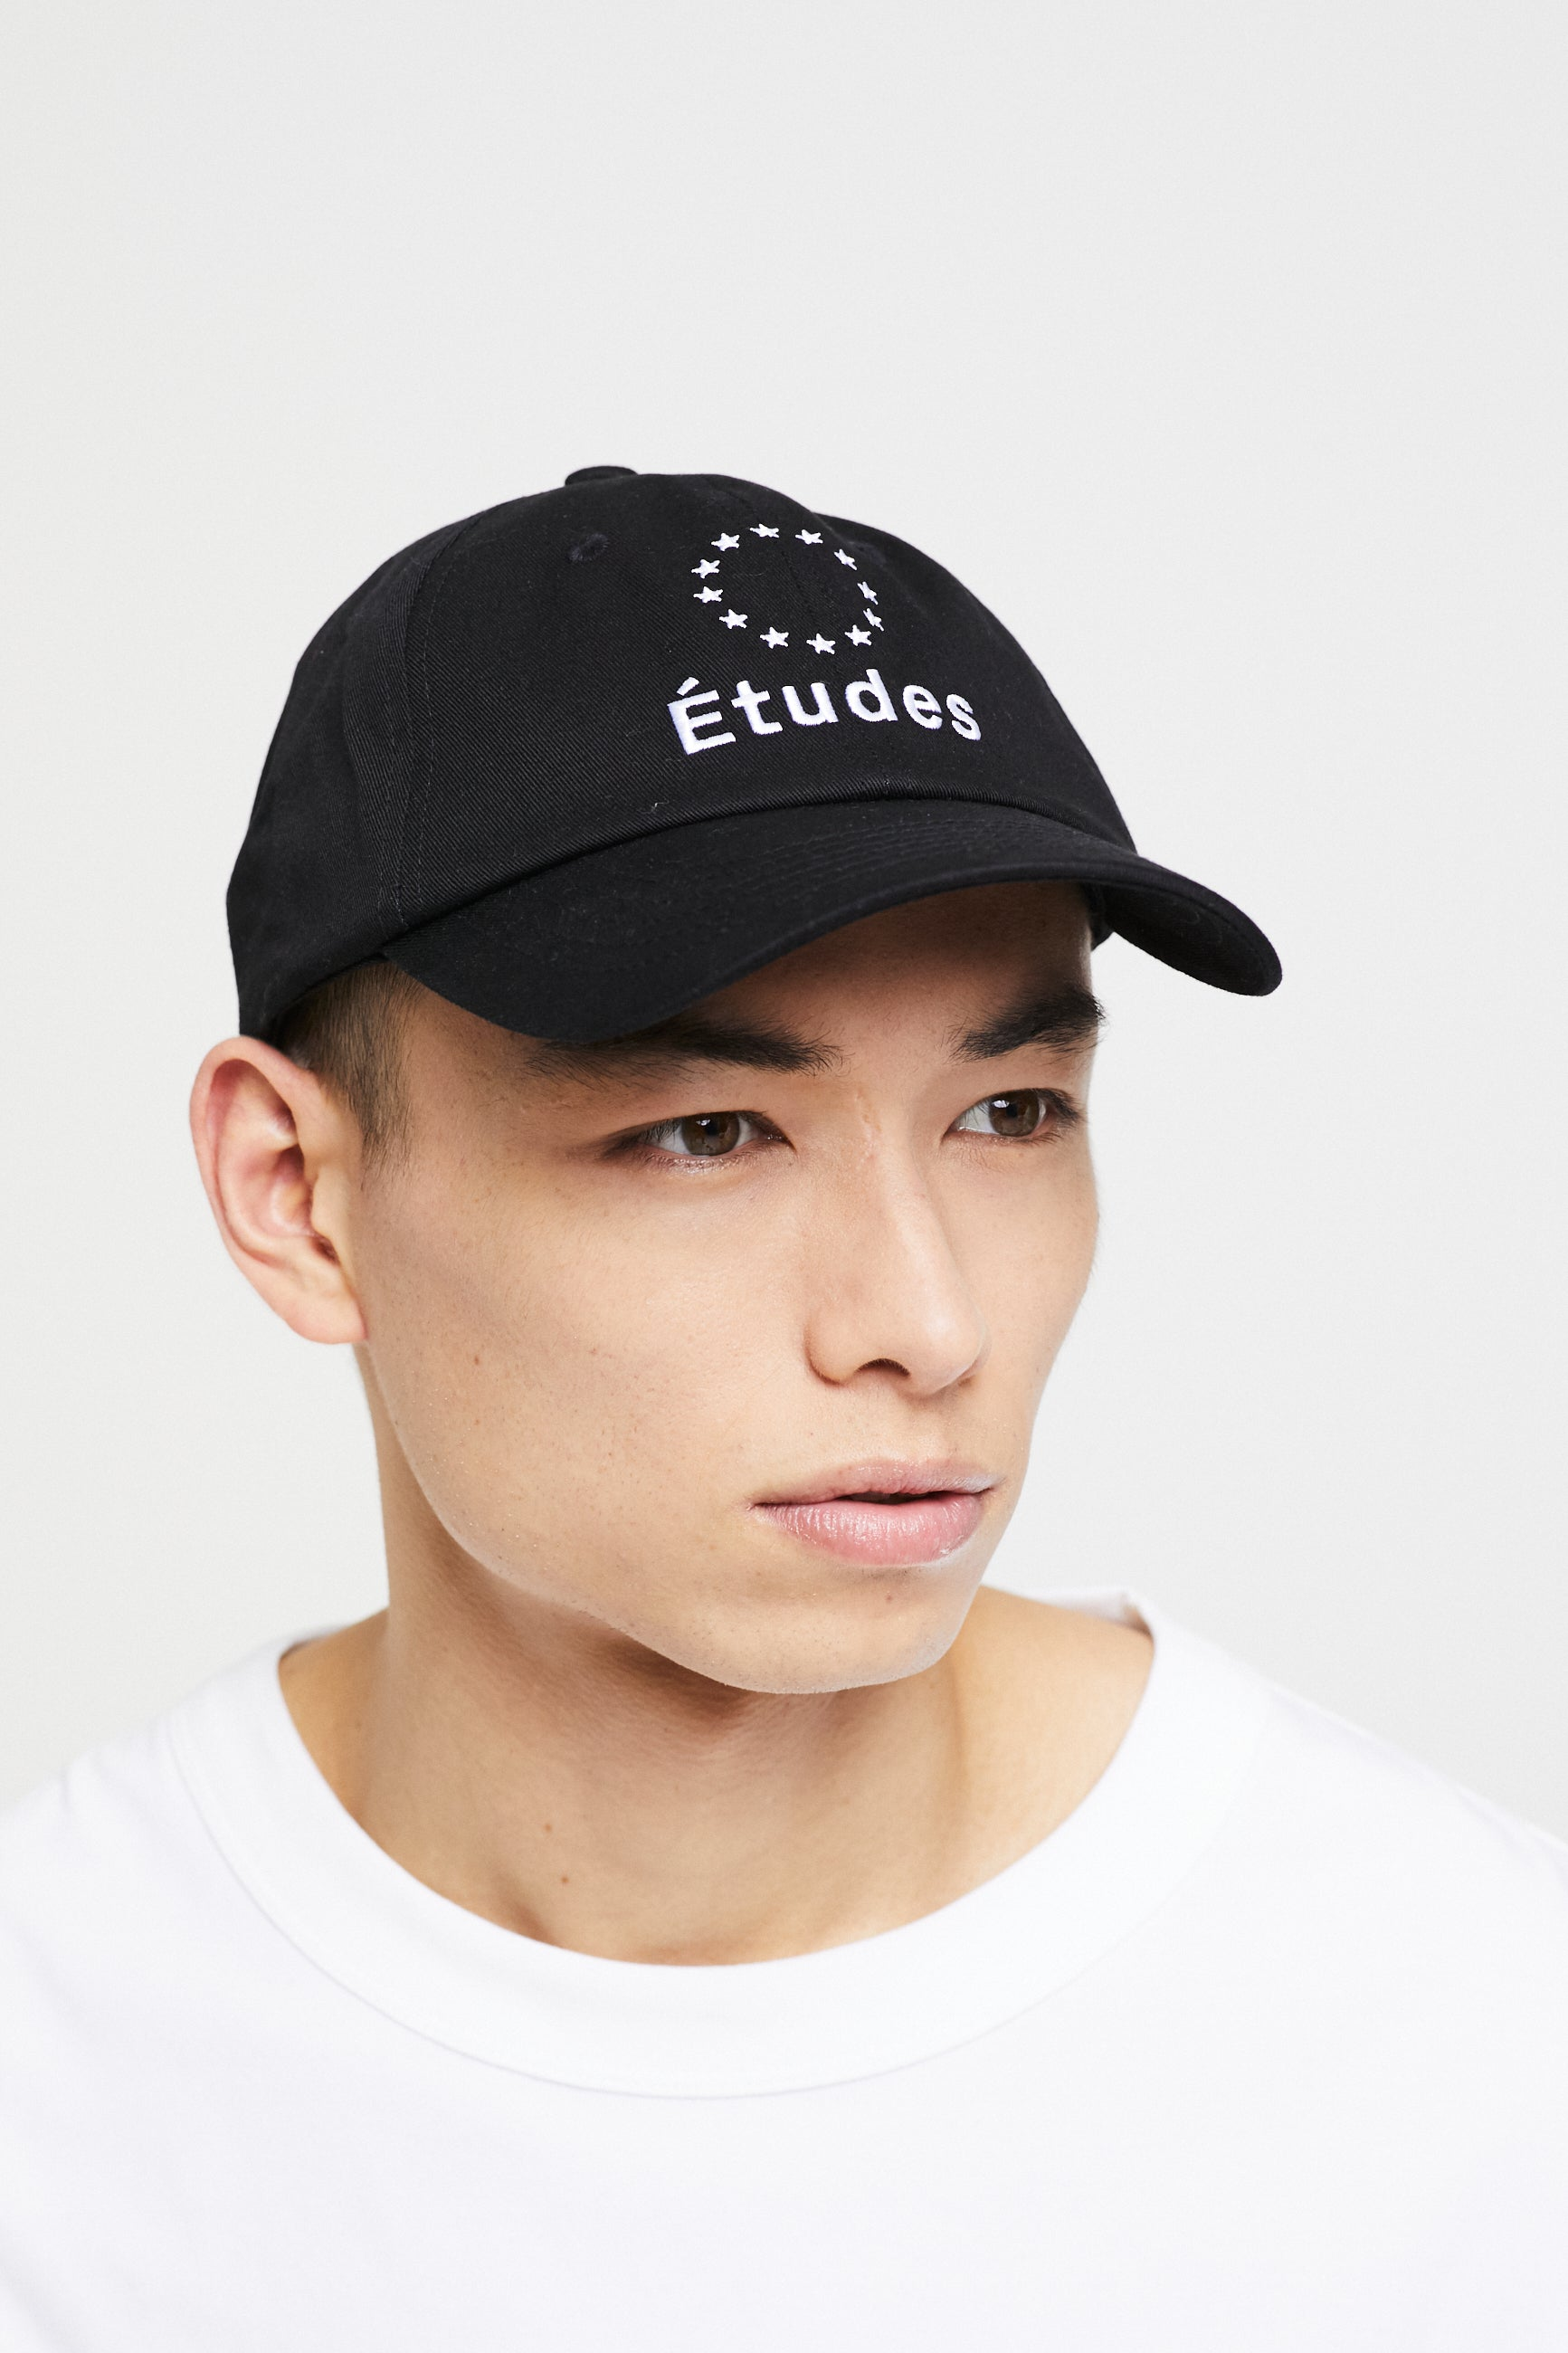 Études Booster Logo Black Hat 2